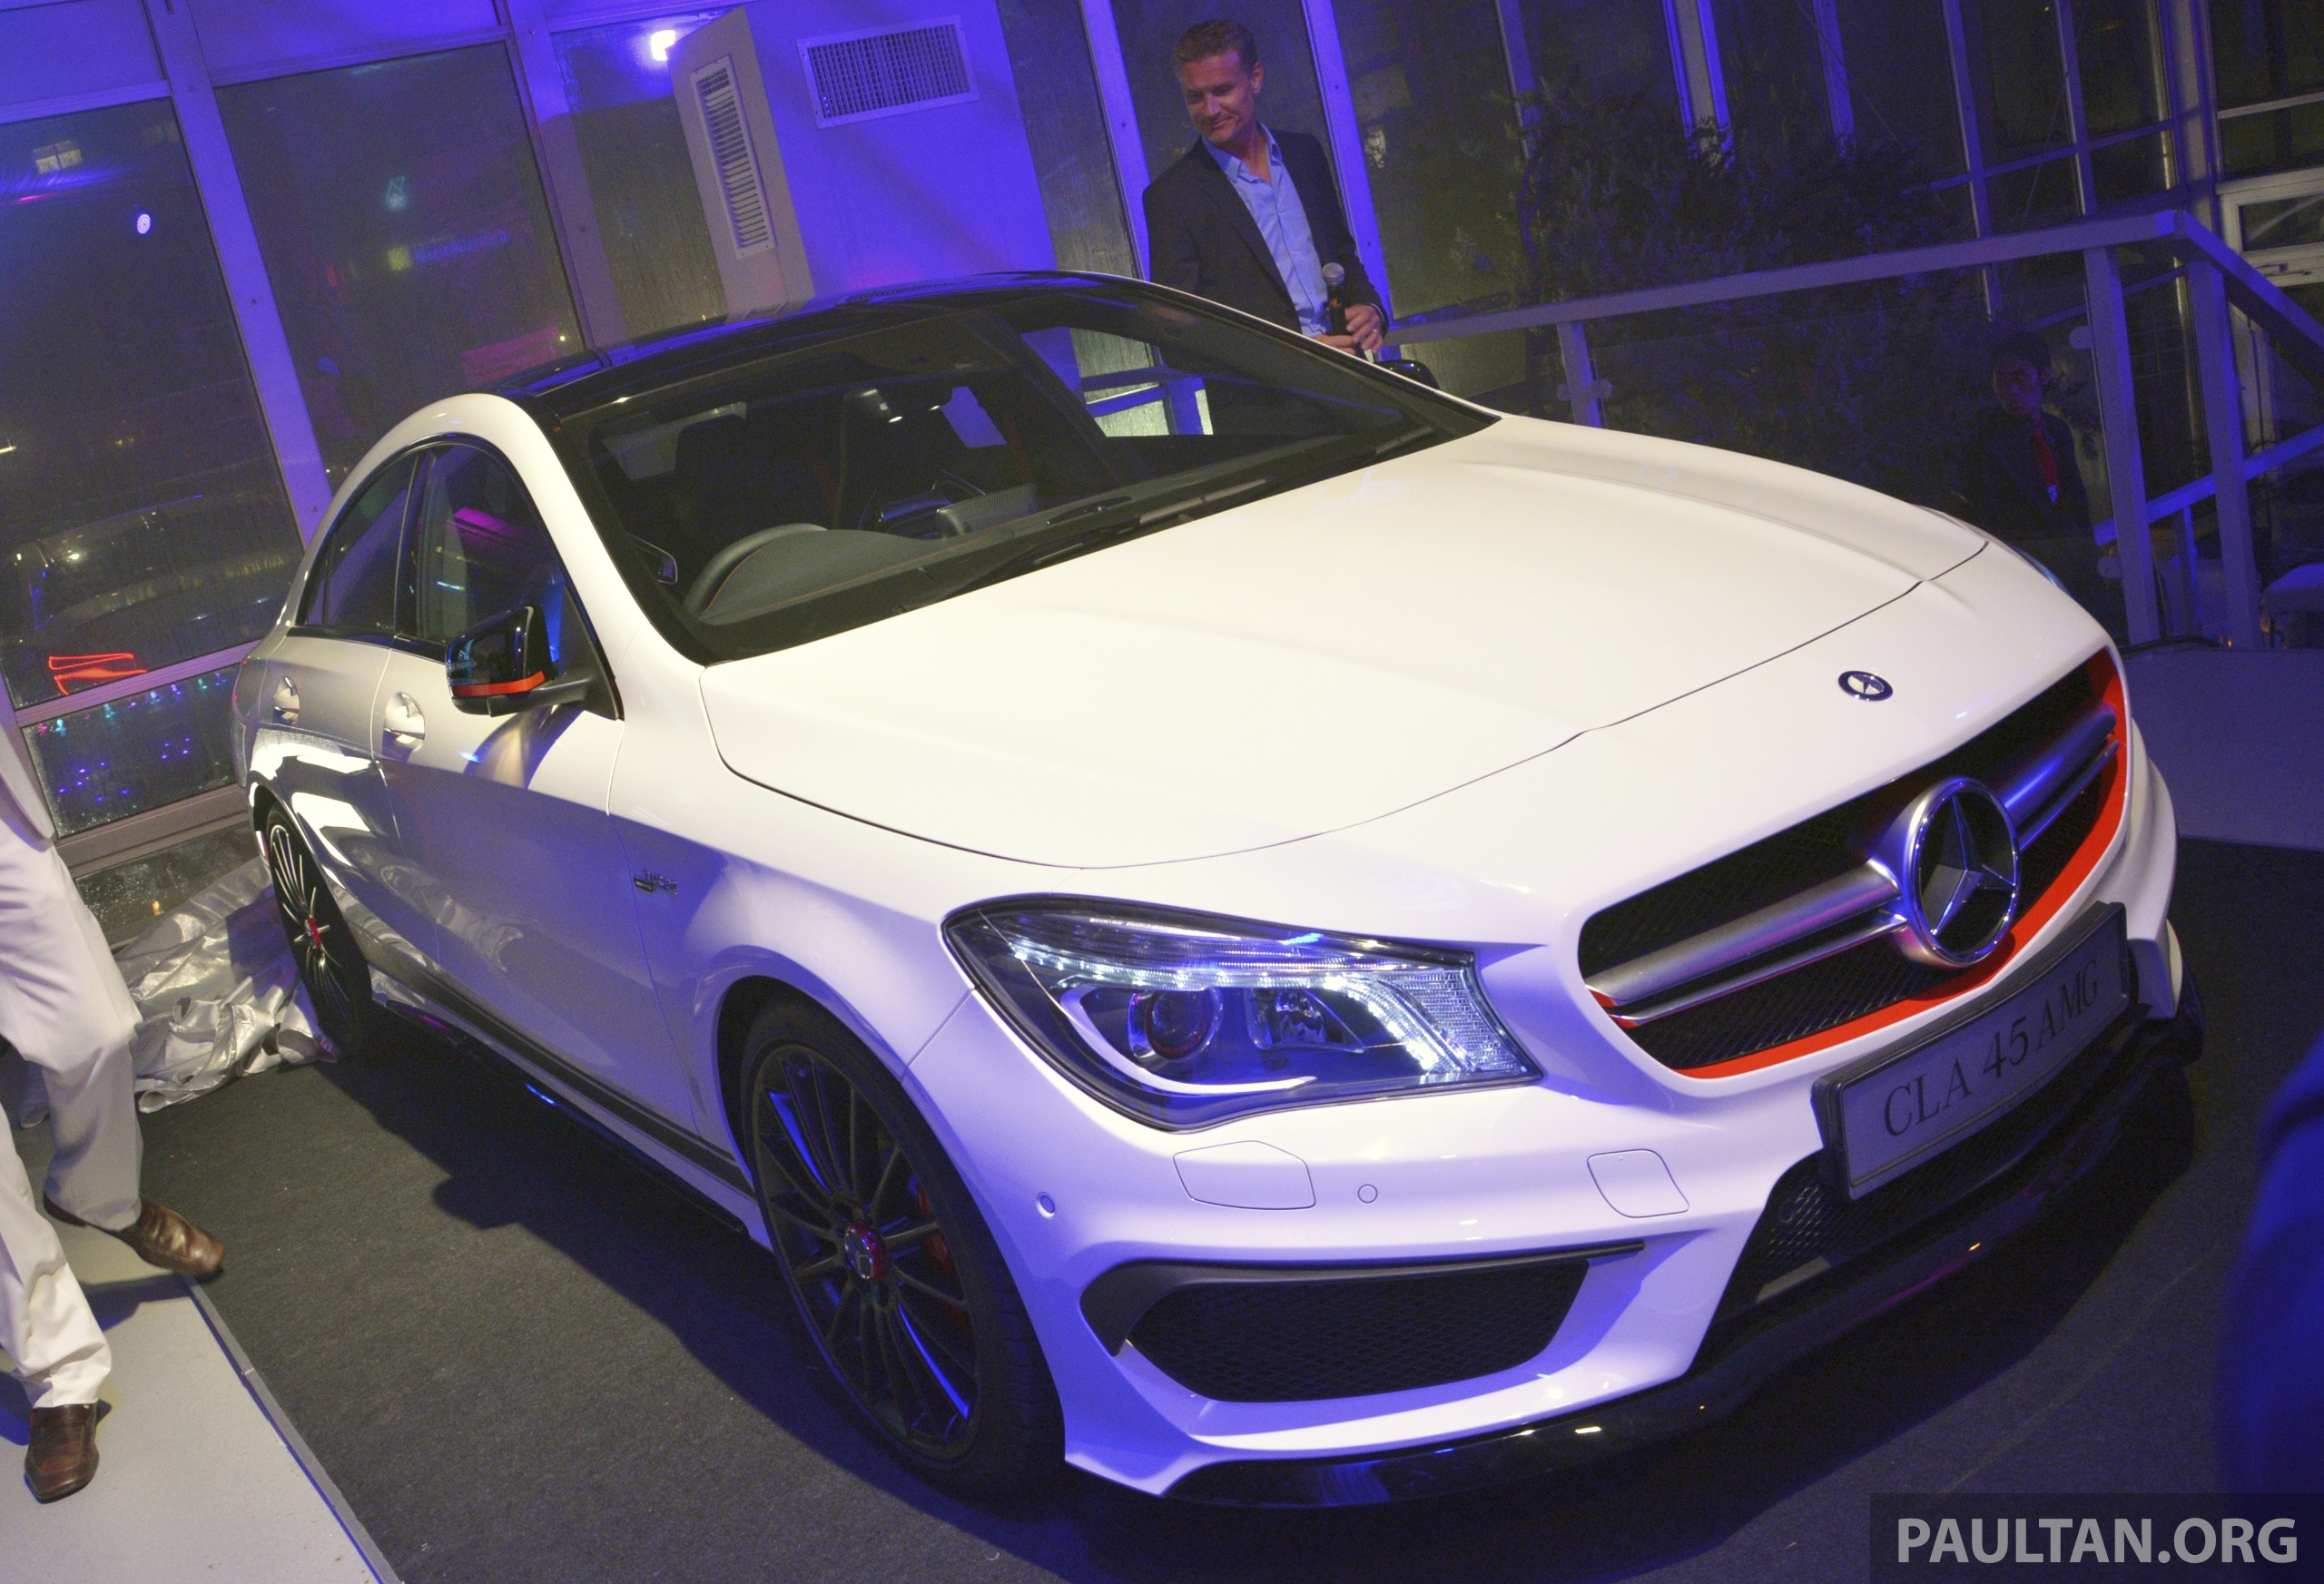 Mercedes Benz Cla Class Launched In Malaysia 200 Rm236k 45 Amg Pricing To Be Confirmed Paul Tan Image 238276